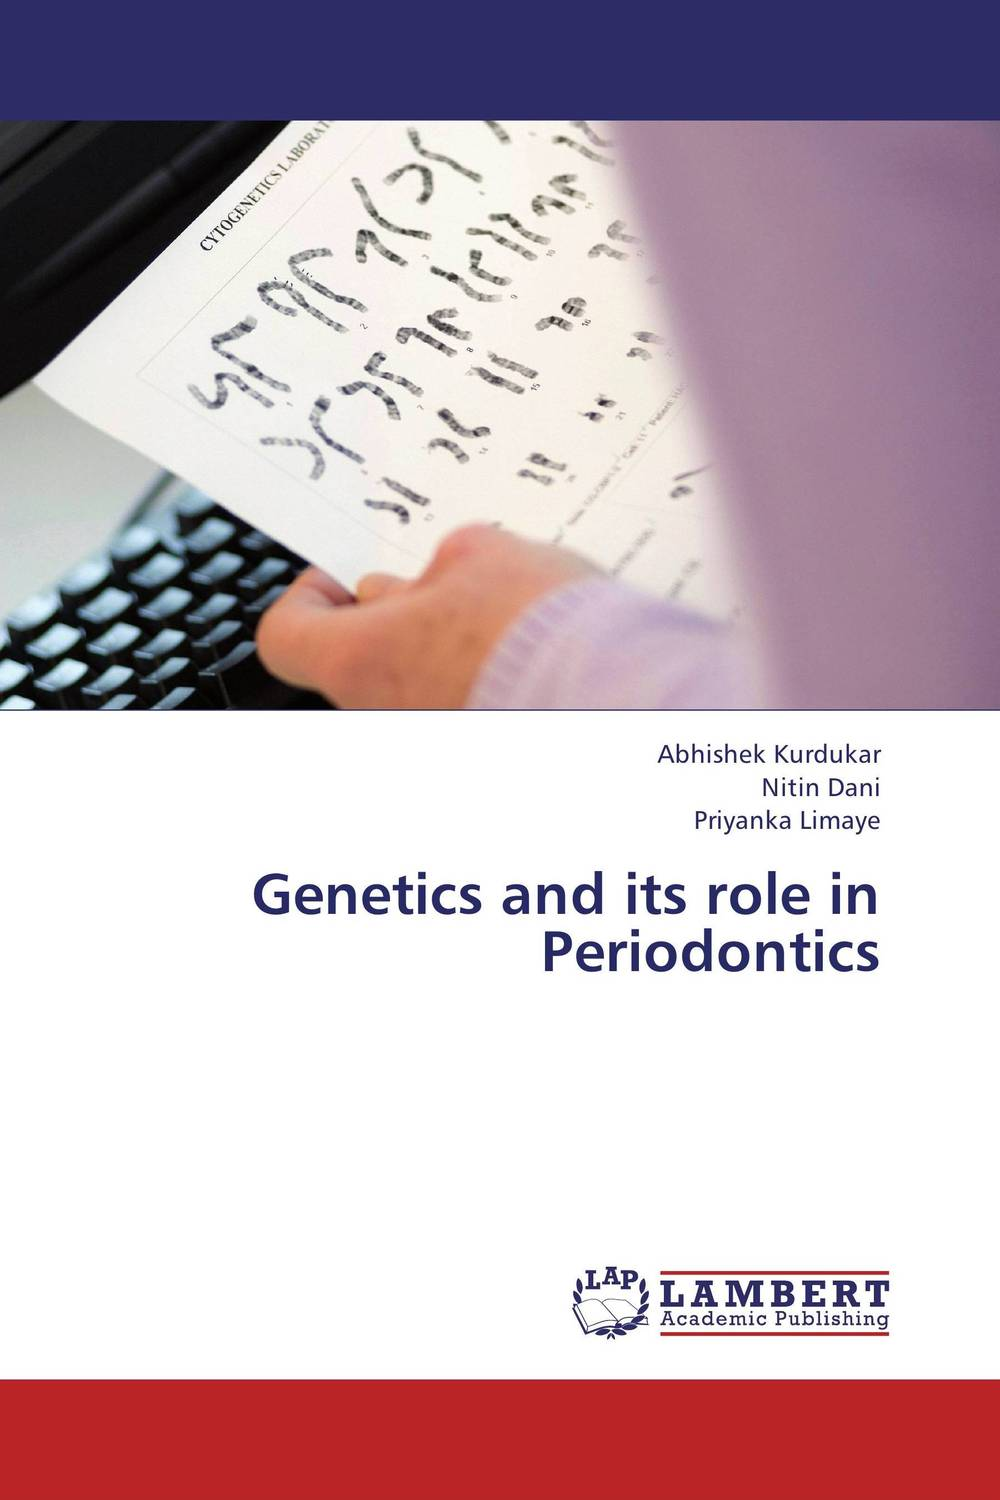 Genetics and its role in Periodontics vinod kumar singh c p srivastava and santosh kumar genetics of slow rusting resistance in field pea